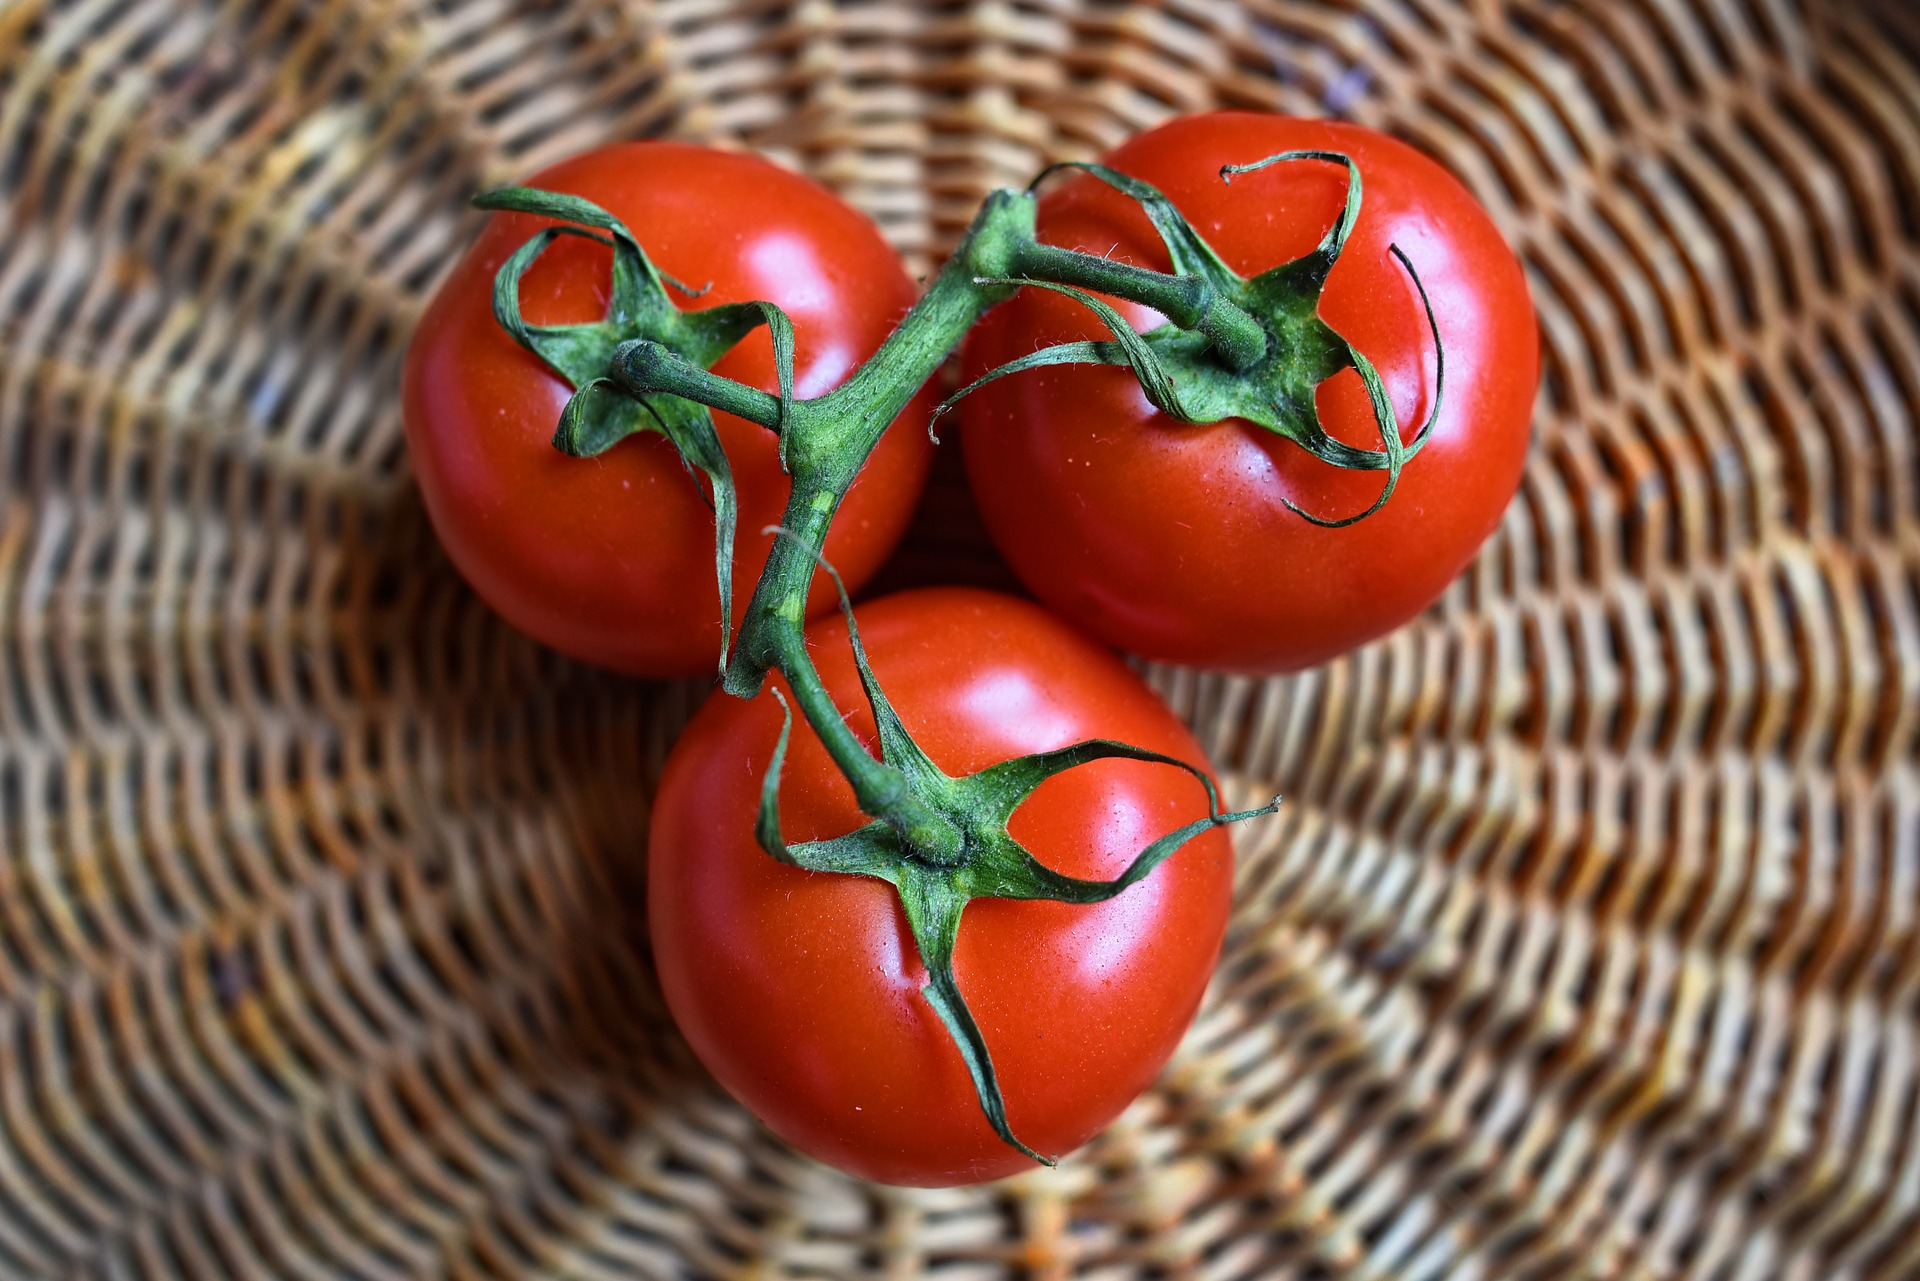 A spicy tomato would be delicious, first off, but it would also make it easier to get capsaicinoids, which are used for pepper spray and anaesthetics.